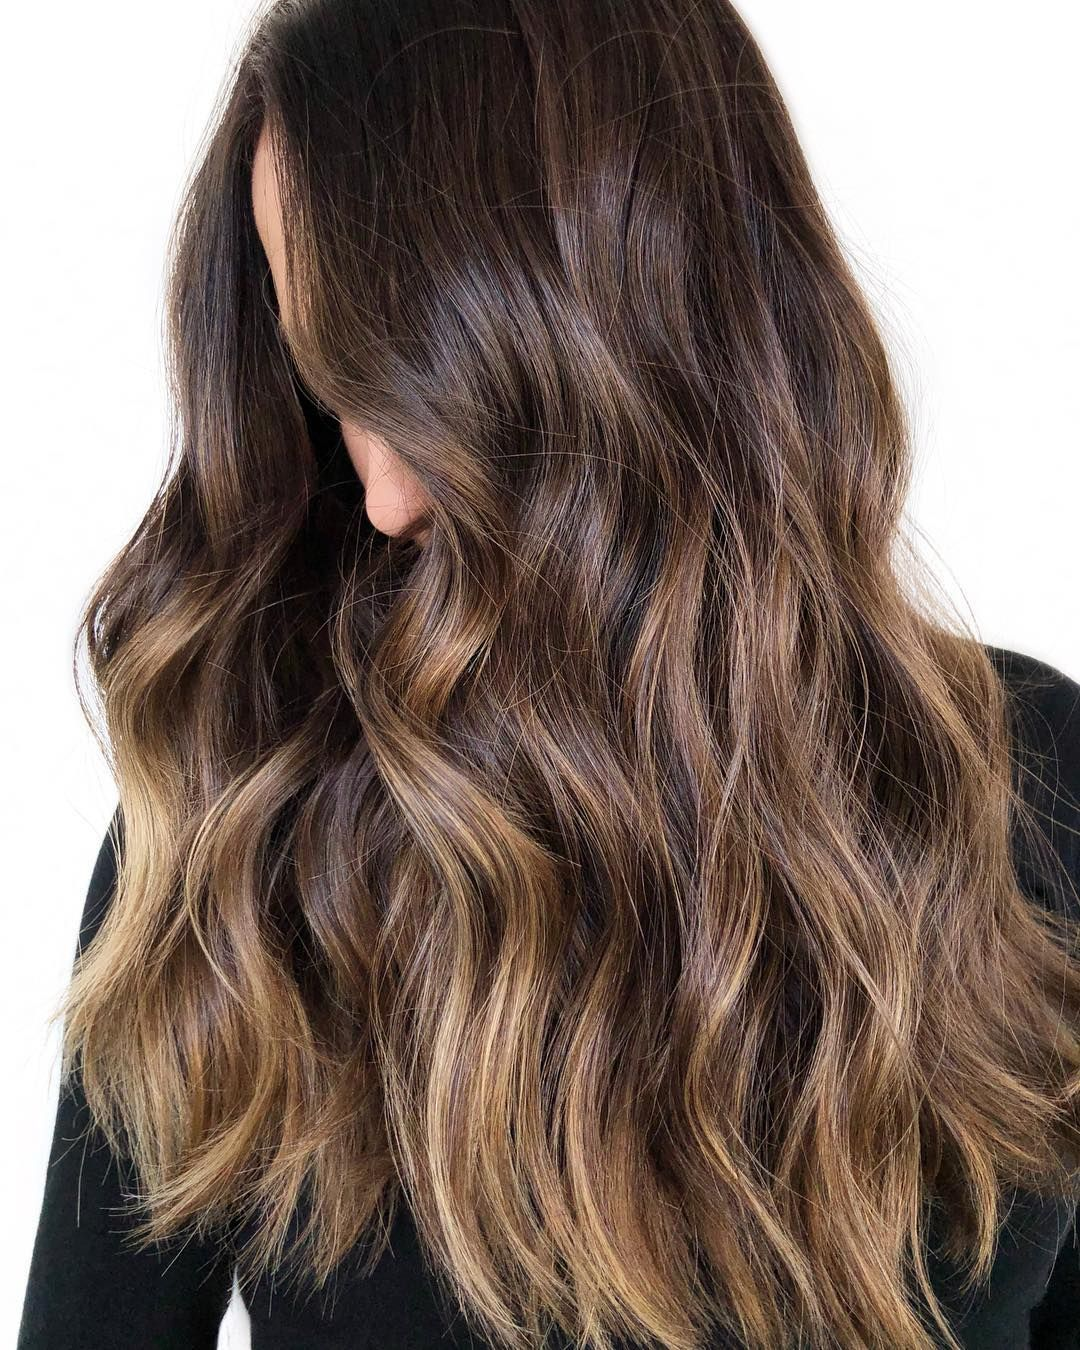 44 Balayage Hair Color Ideas With Blonde – brown hair with highlights ,balayagehair #haircolor #brownhair #blonde